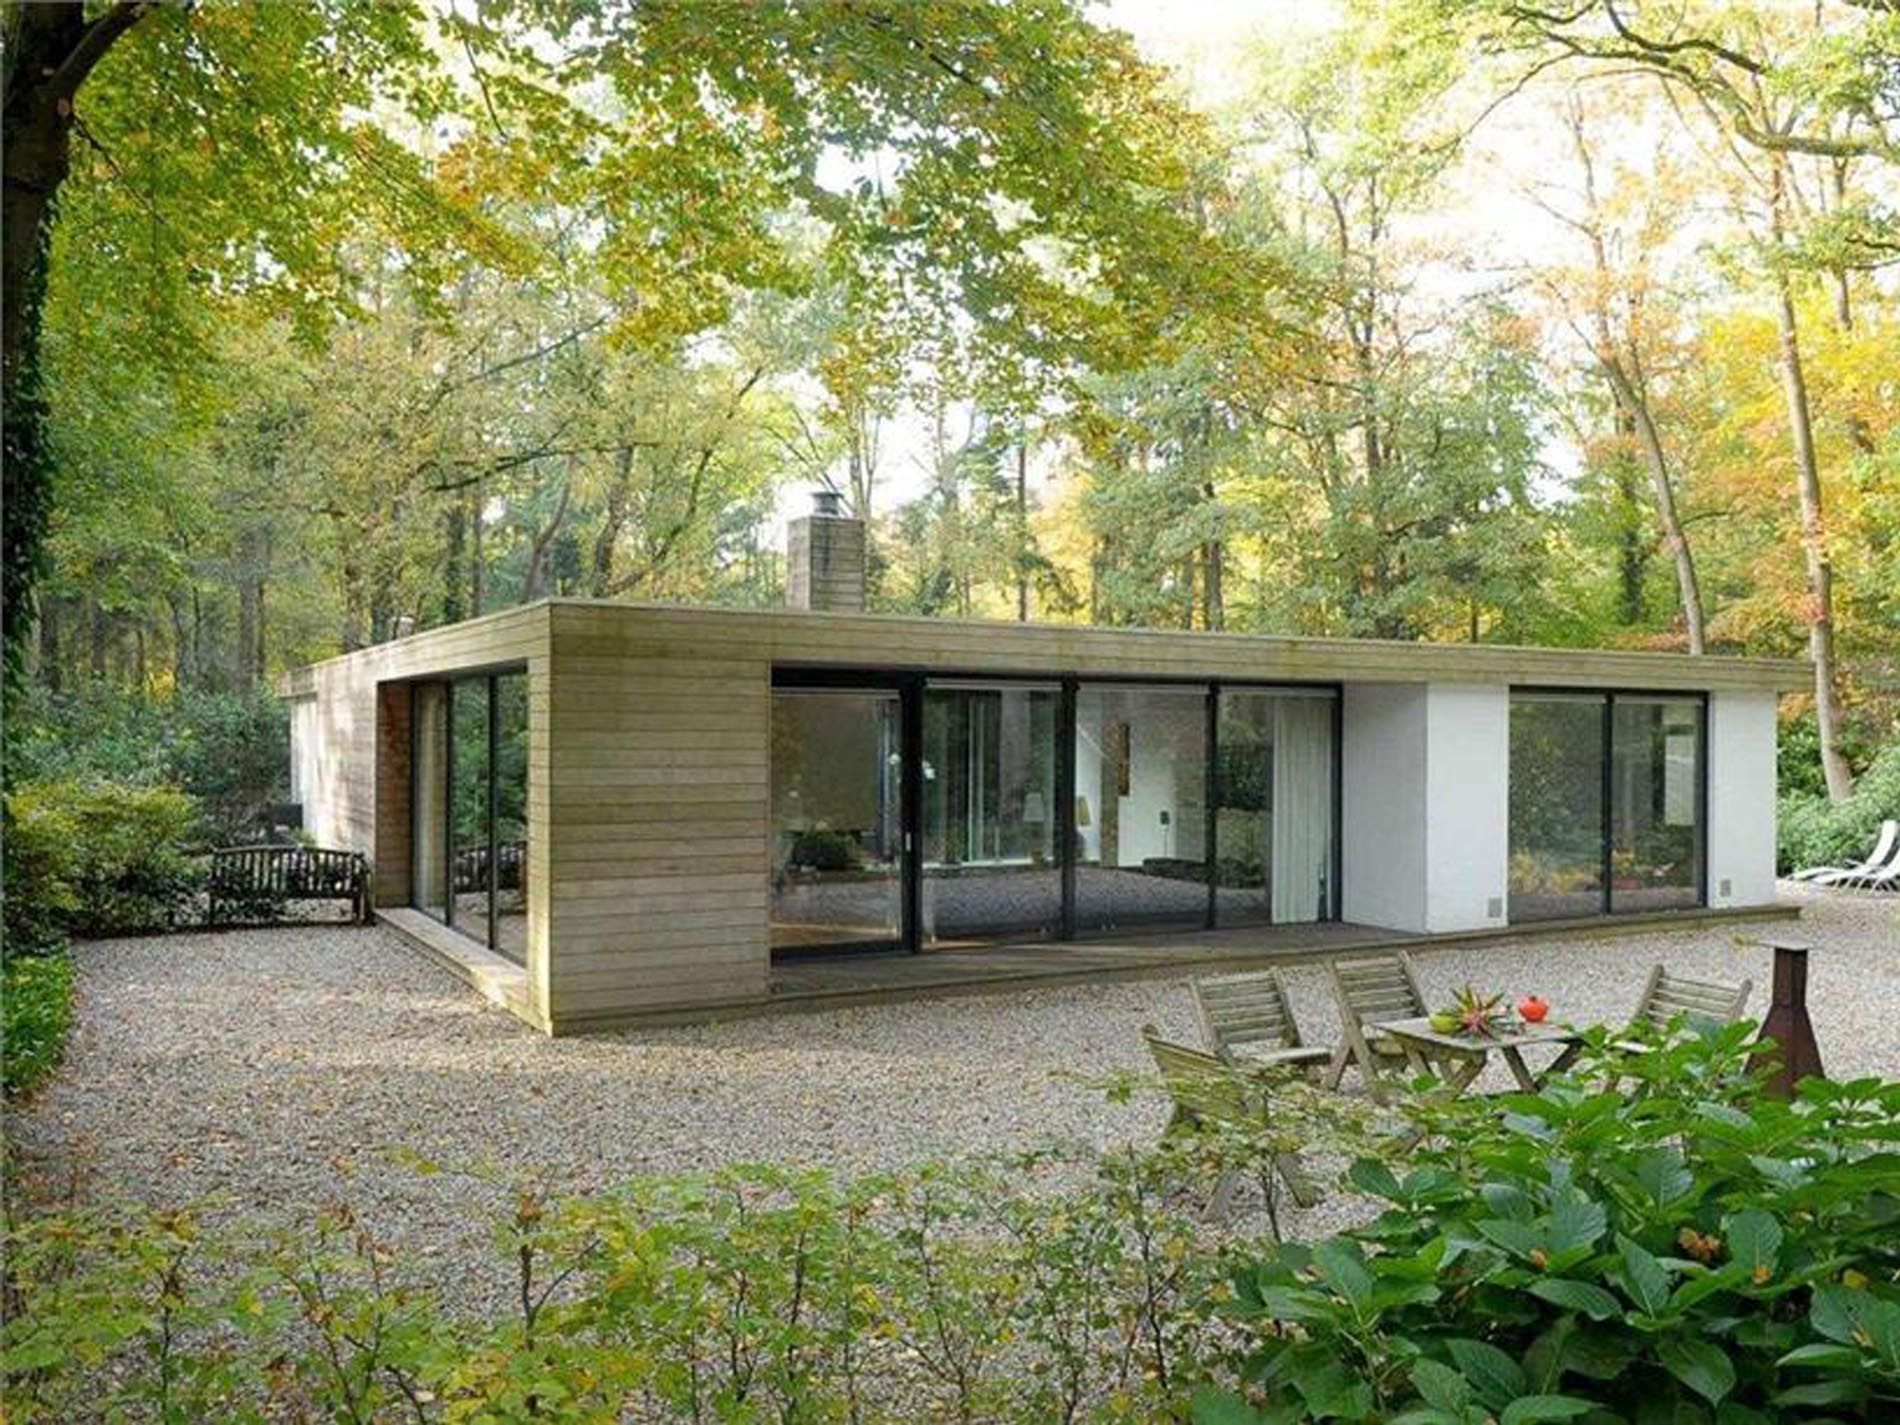 Maas architecten transformatie patiowoning epse for Moderne bungalow architectuur